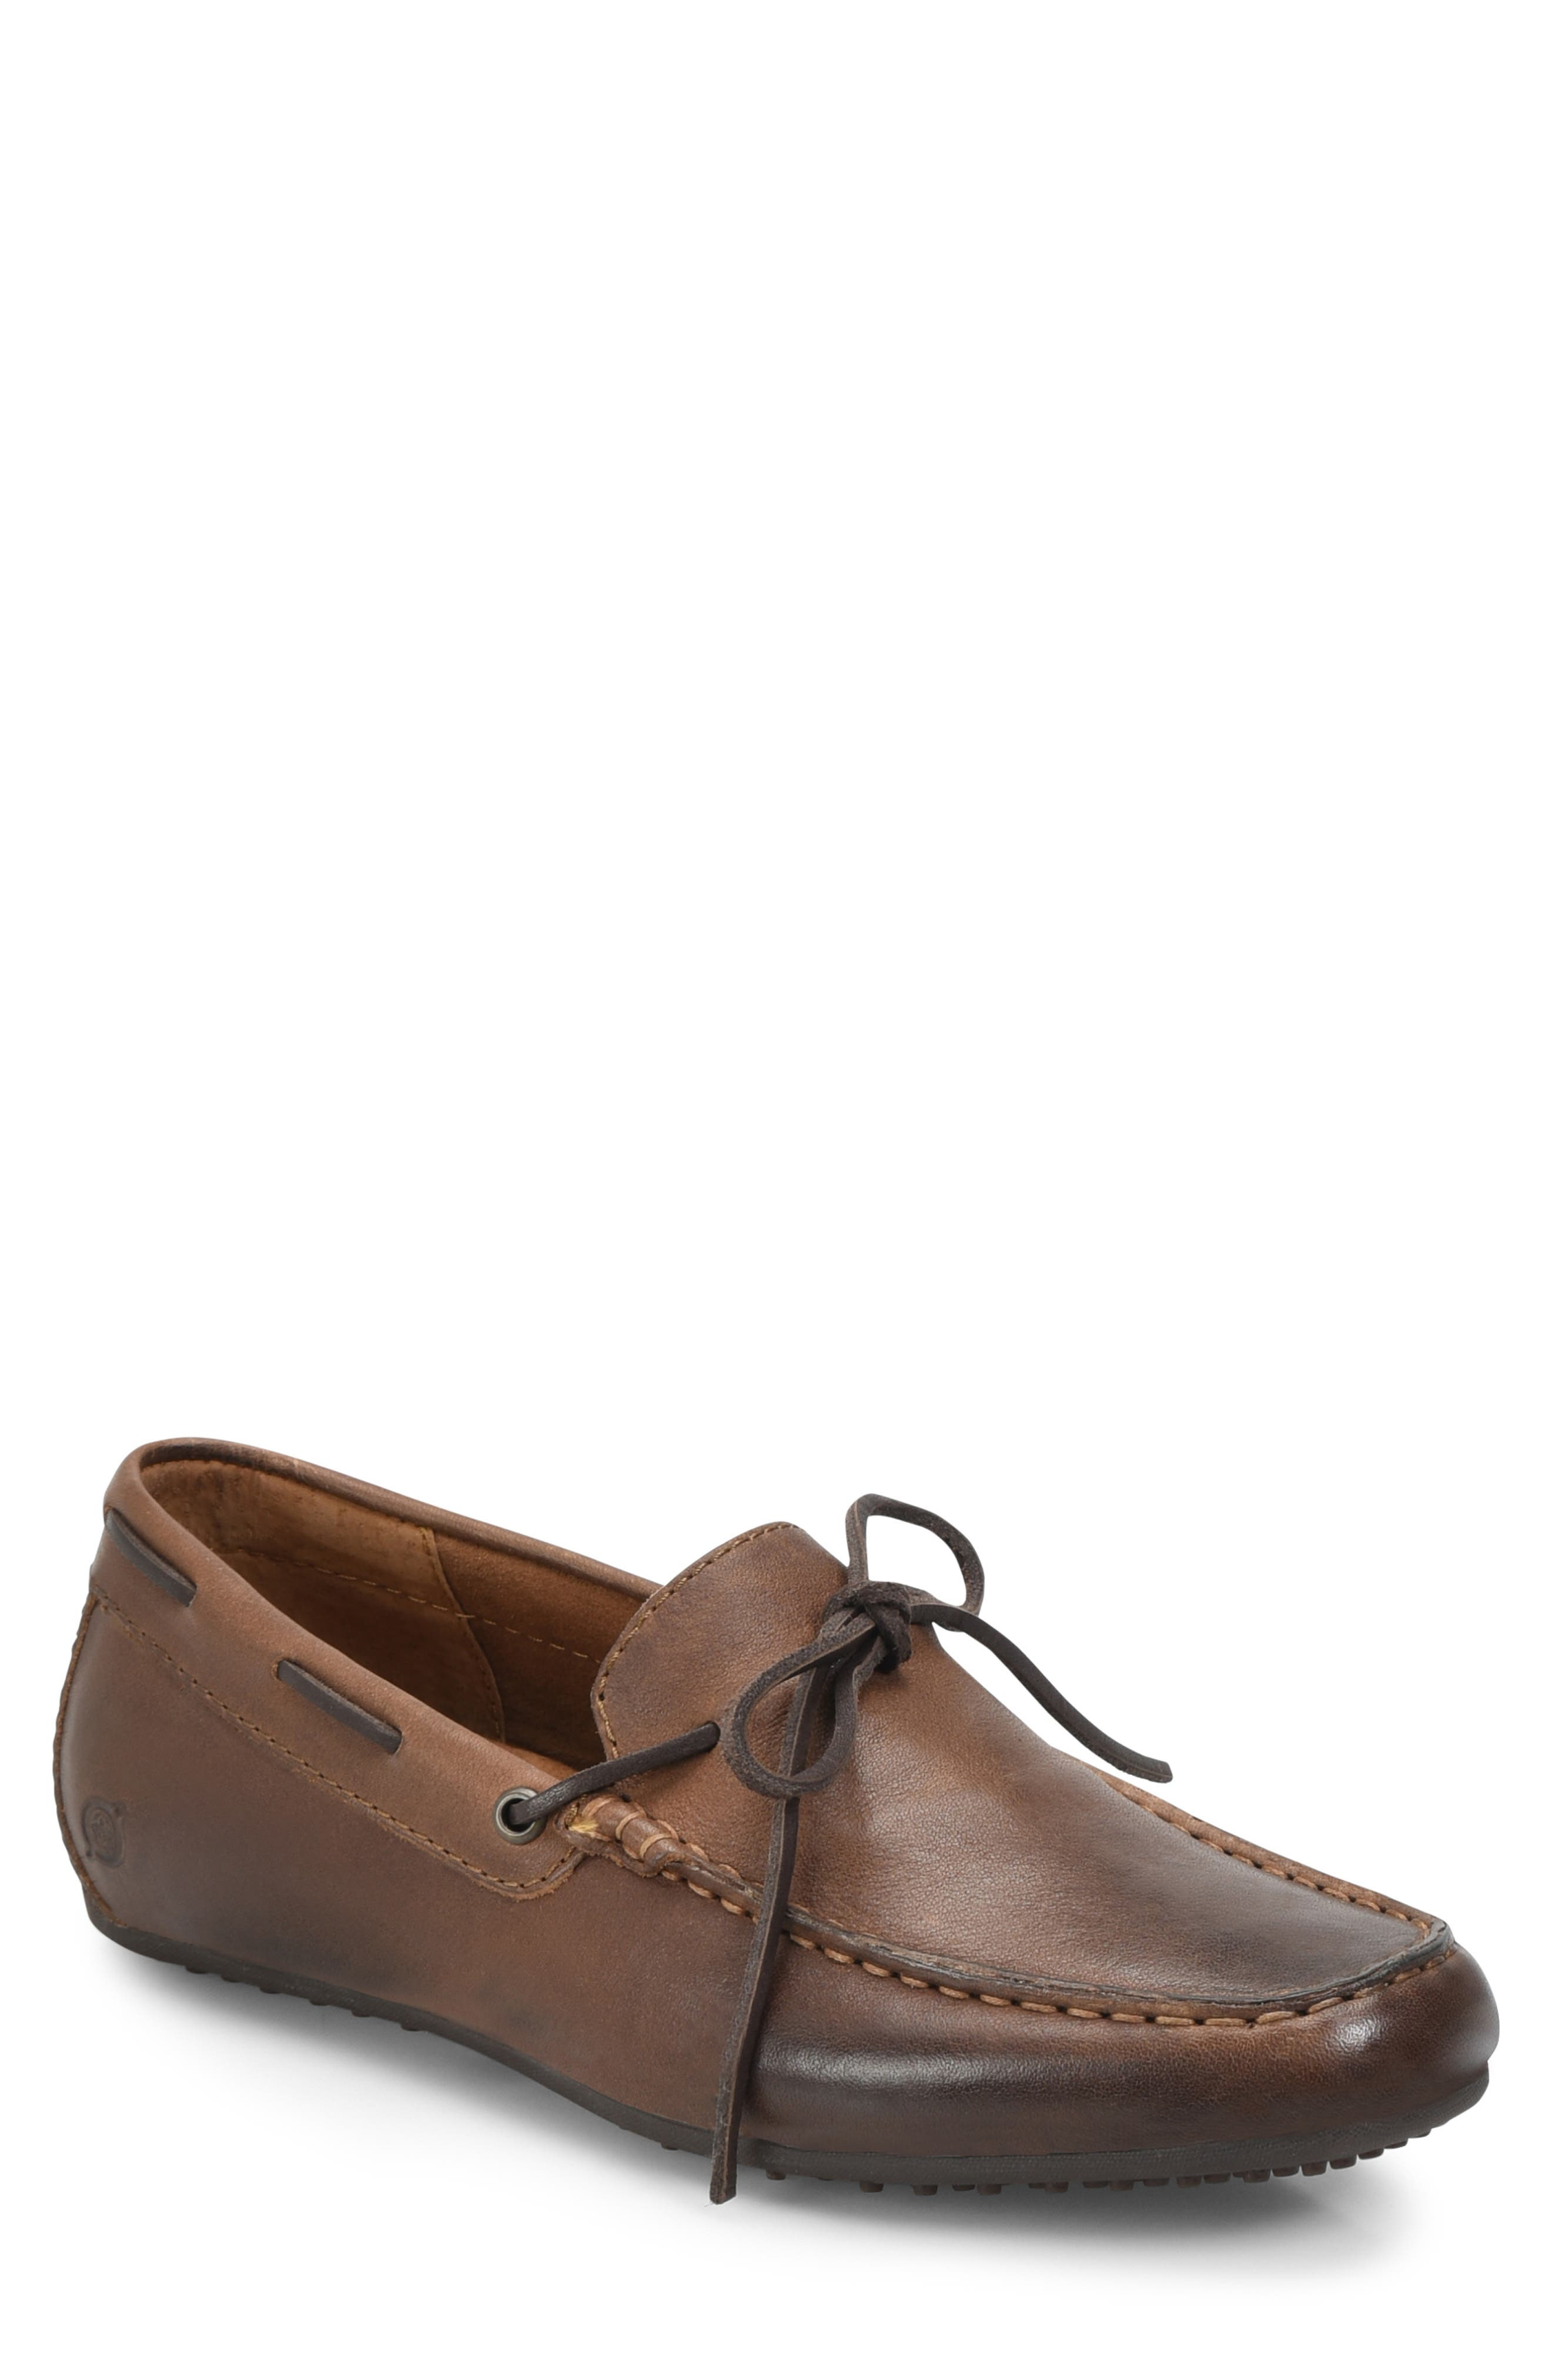 Virgo Driving Shoe,                         Main,                         color, BROWN/BROWN LEATHER